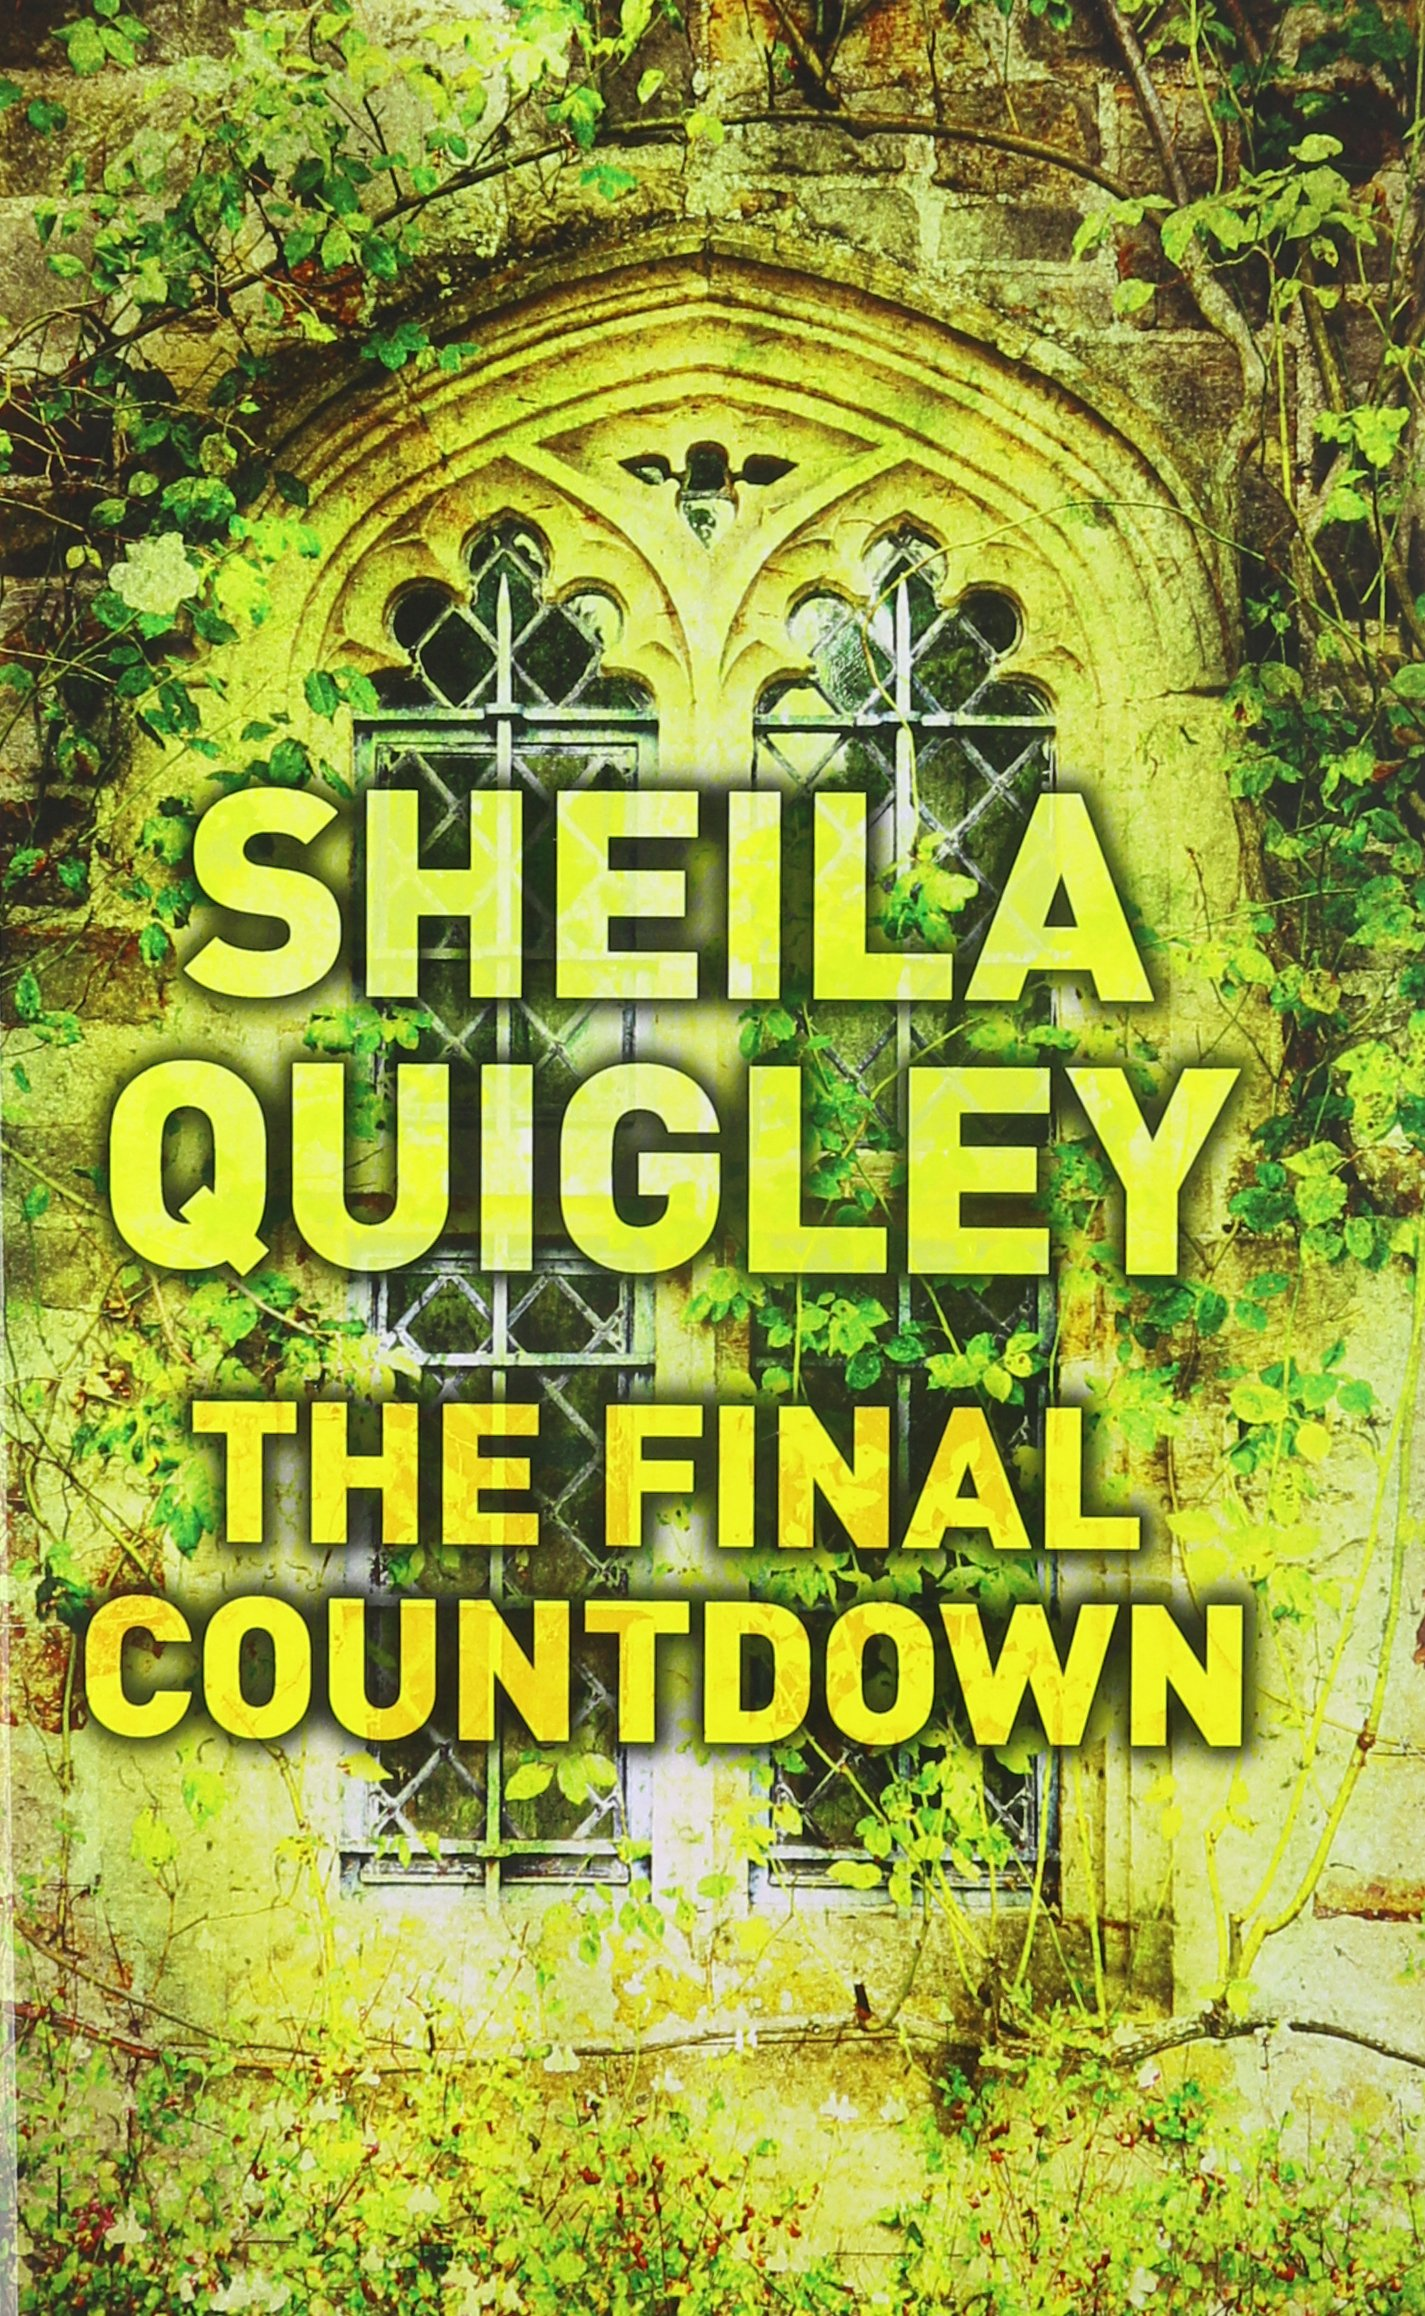 THE FINAL COUNTDOWN (HOLY ISLAND TRILOGY series Book 3)